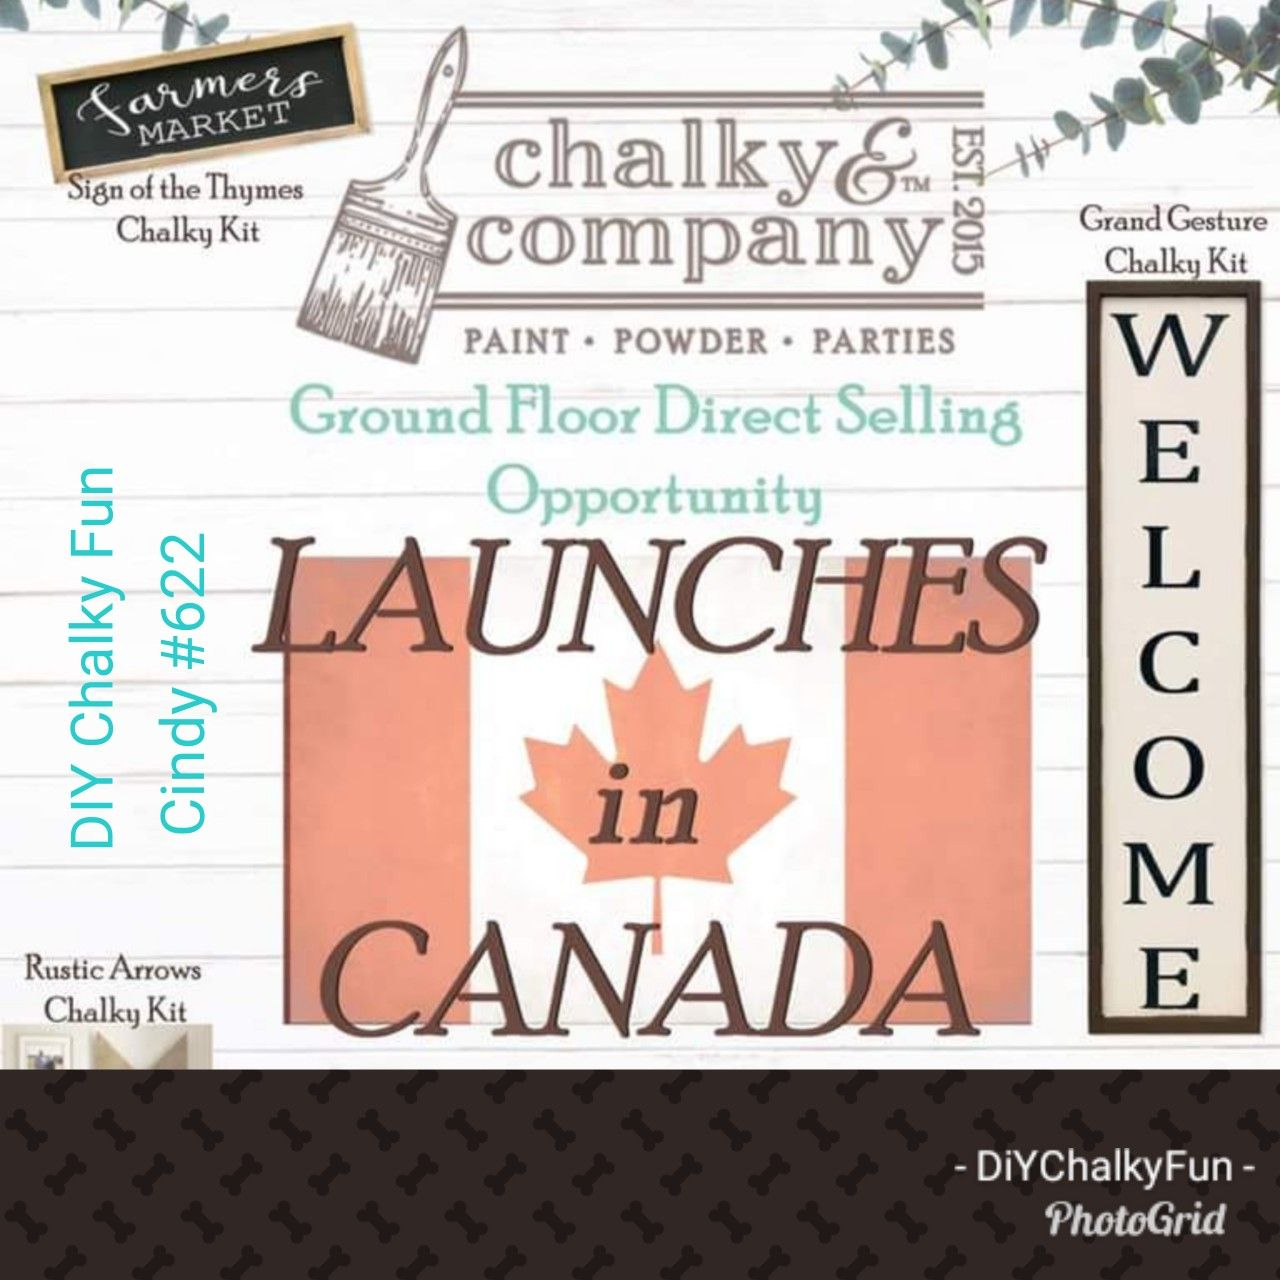 Chalky Canada Coming Soon! Farmers market sign, Market